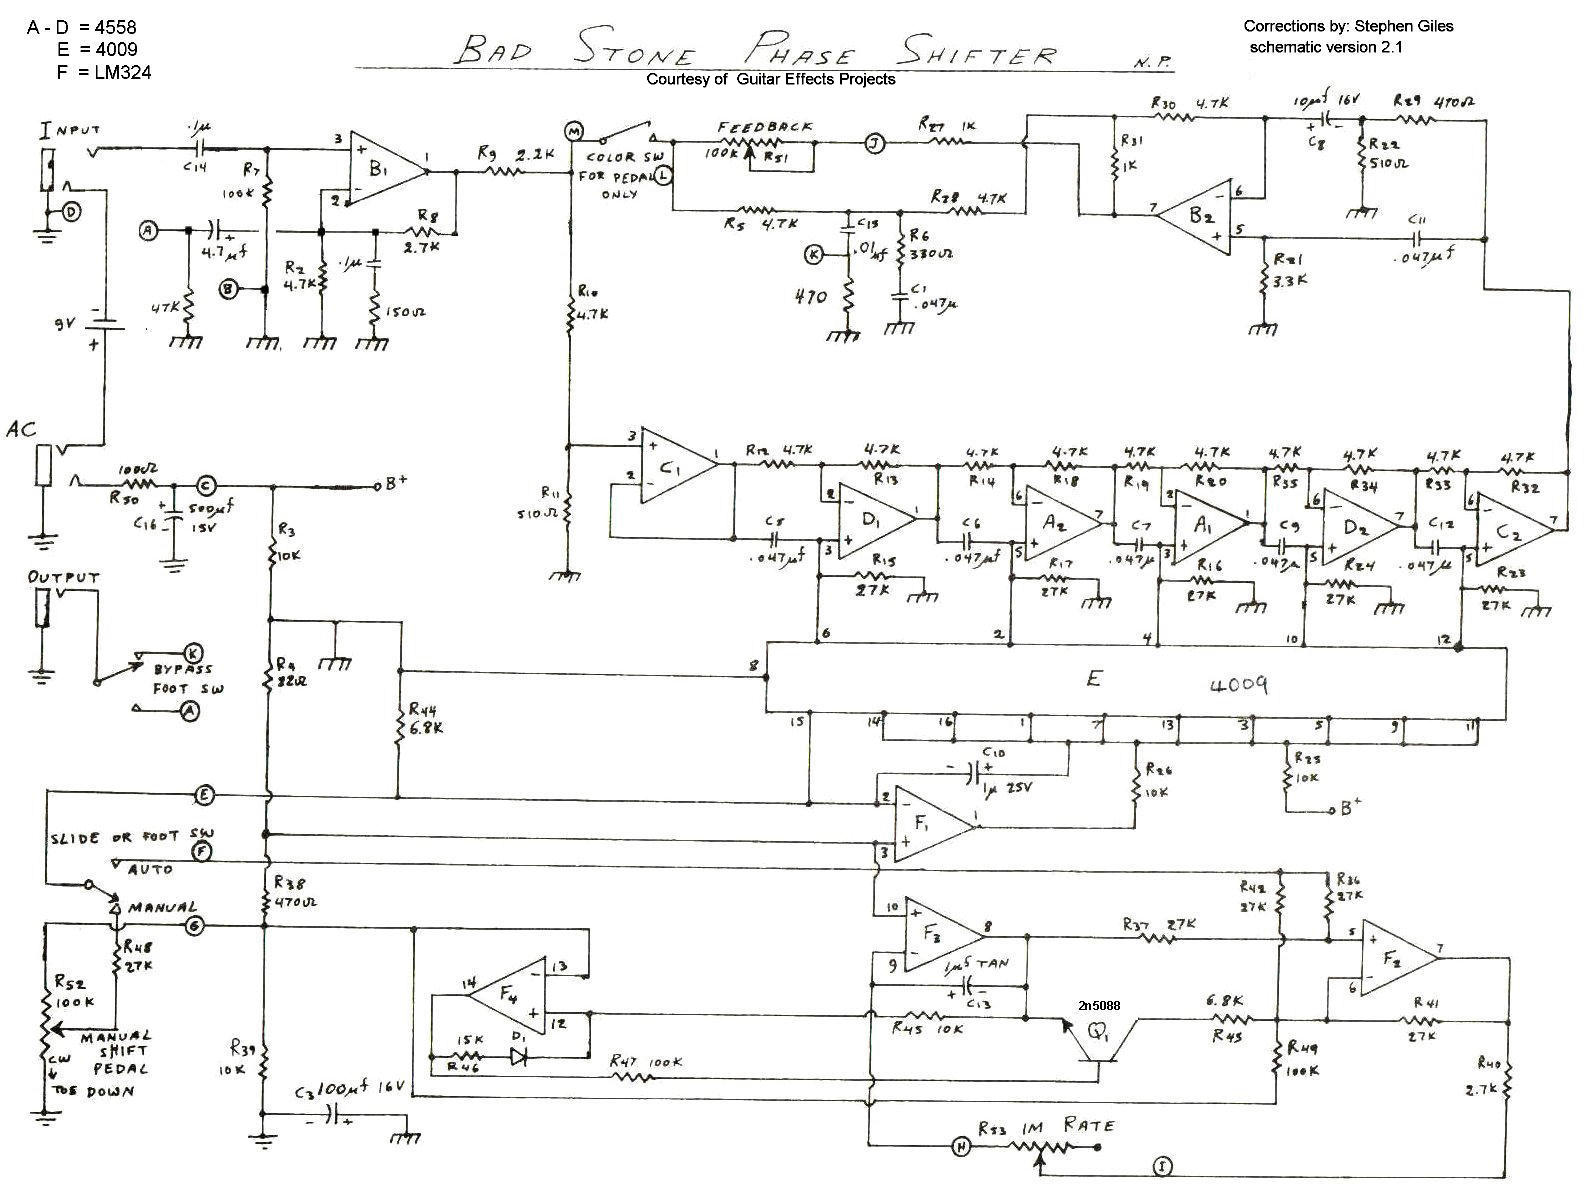 badstone_2 schematics general guitar gadgets talkbox wiring diagram at panicattacktreatment.co